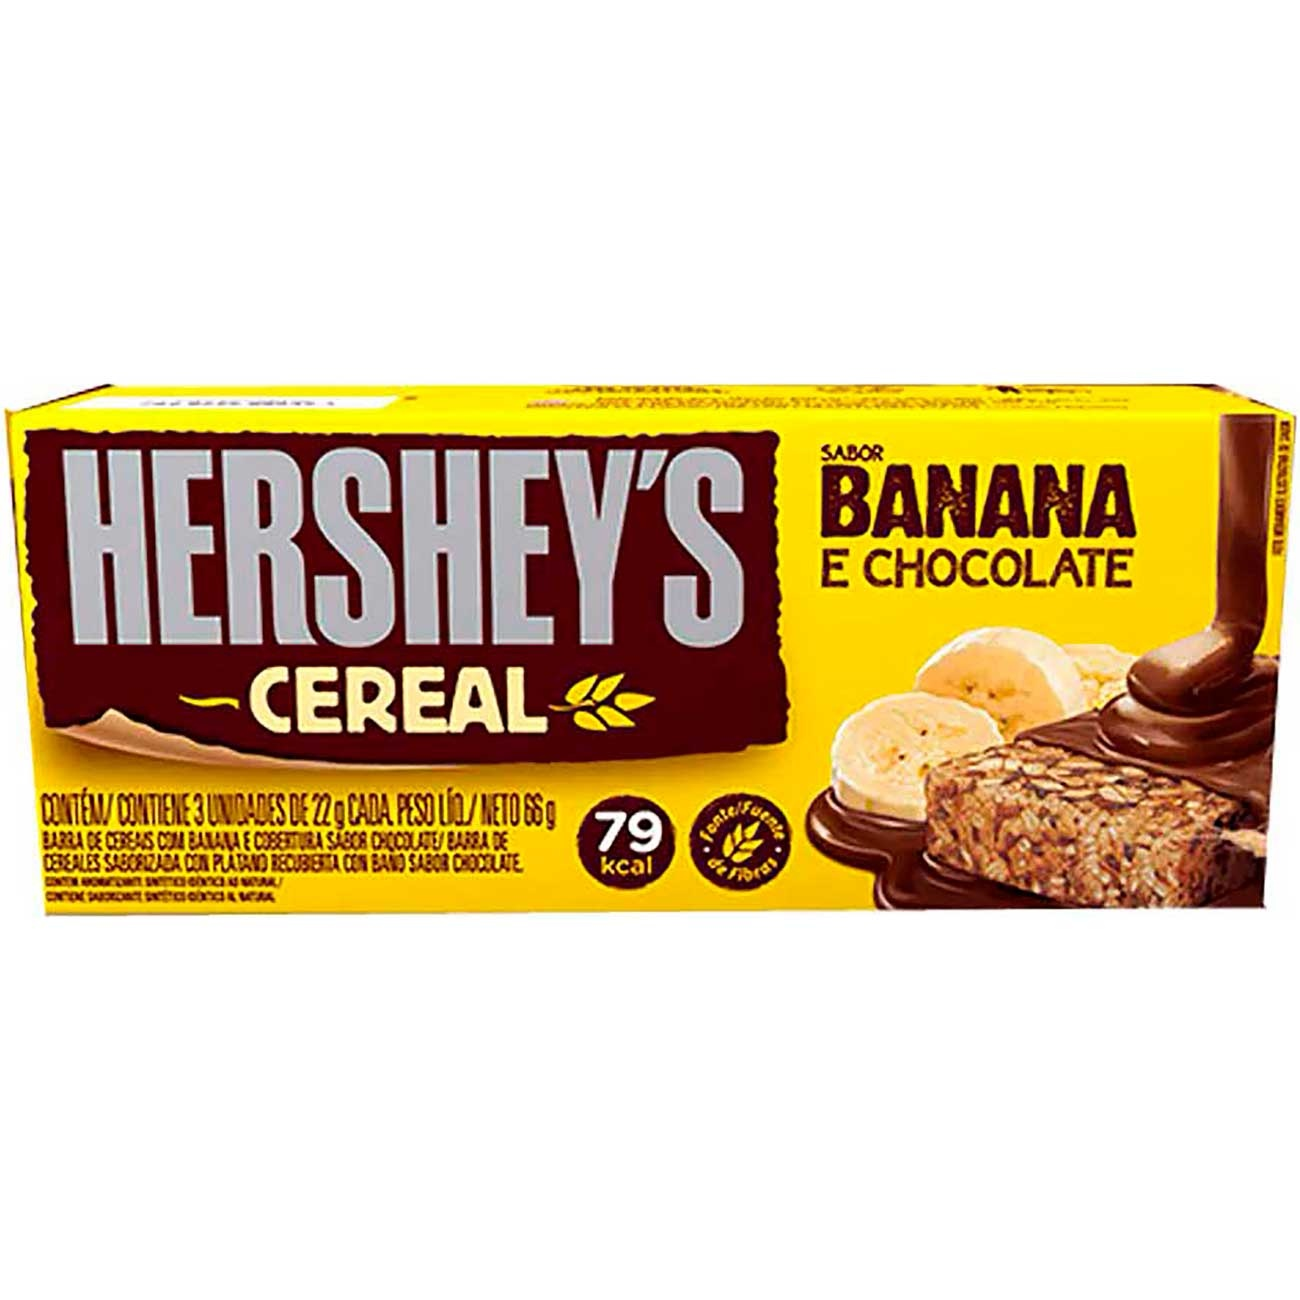 Chocolate Hersheys Banana Light 22g | Caixa com 24 unidades